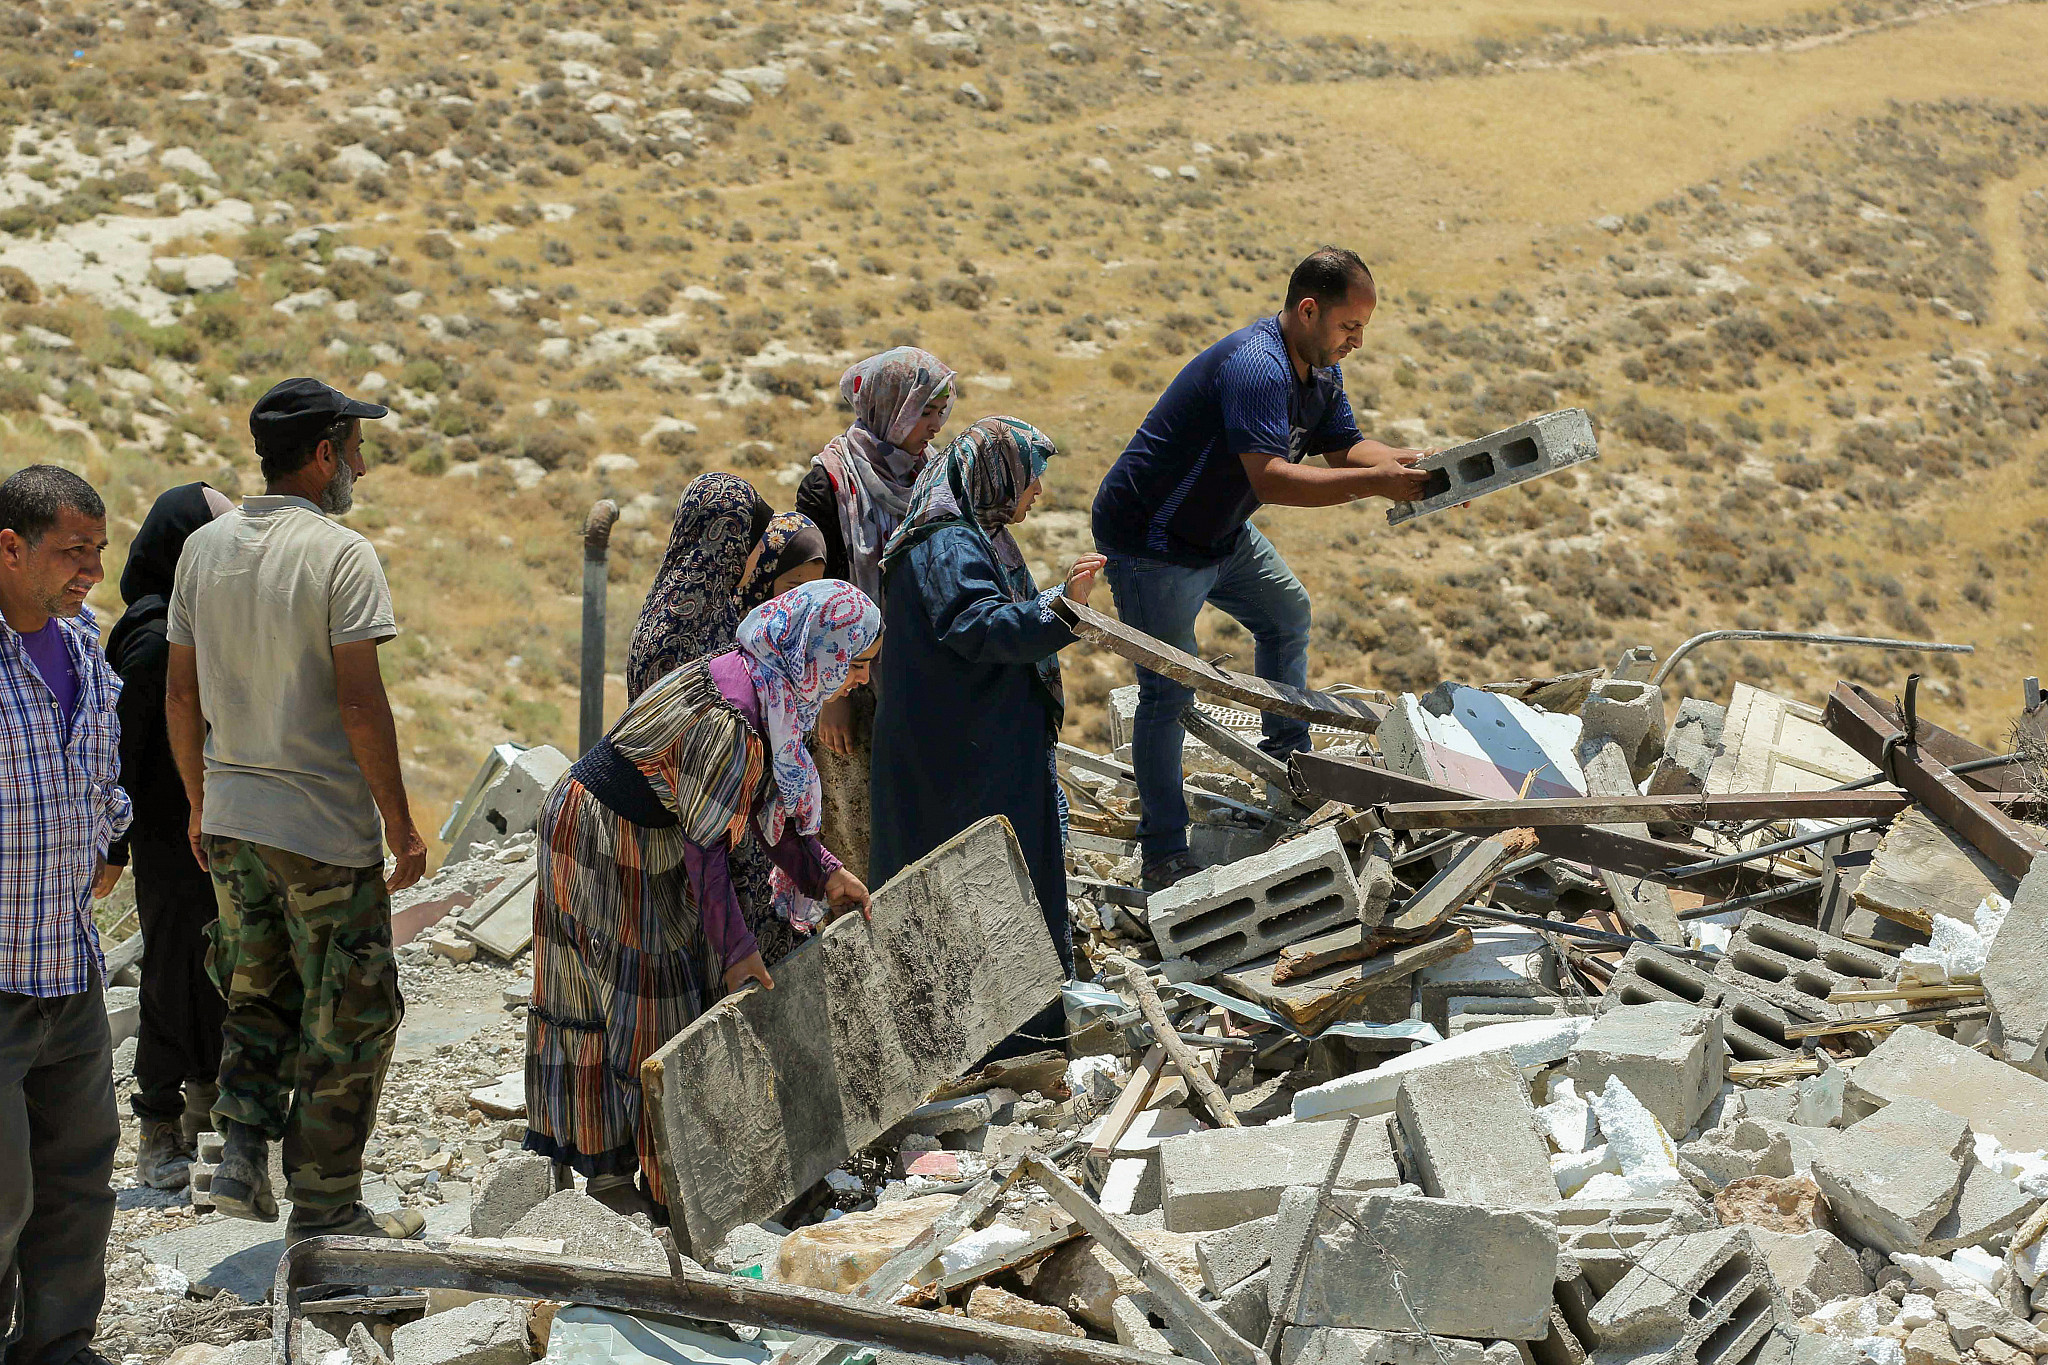 Palestinians pick through houses demolished by Israeli authorities in the West Bank village of Khalat Aldabe, south of Yatta, June 17, 2019. (Wissam Hashlamon/Flash90)